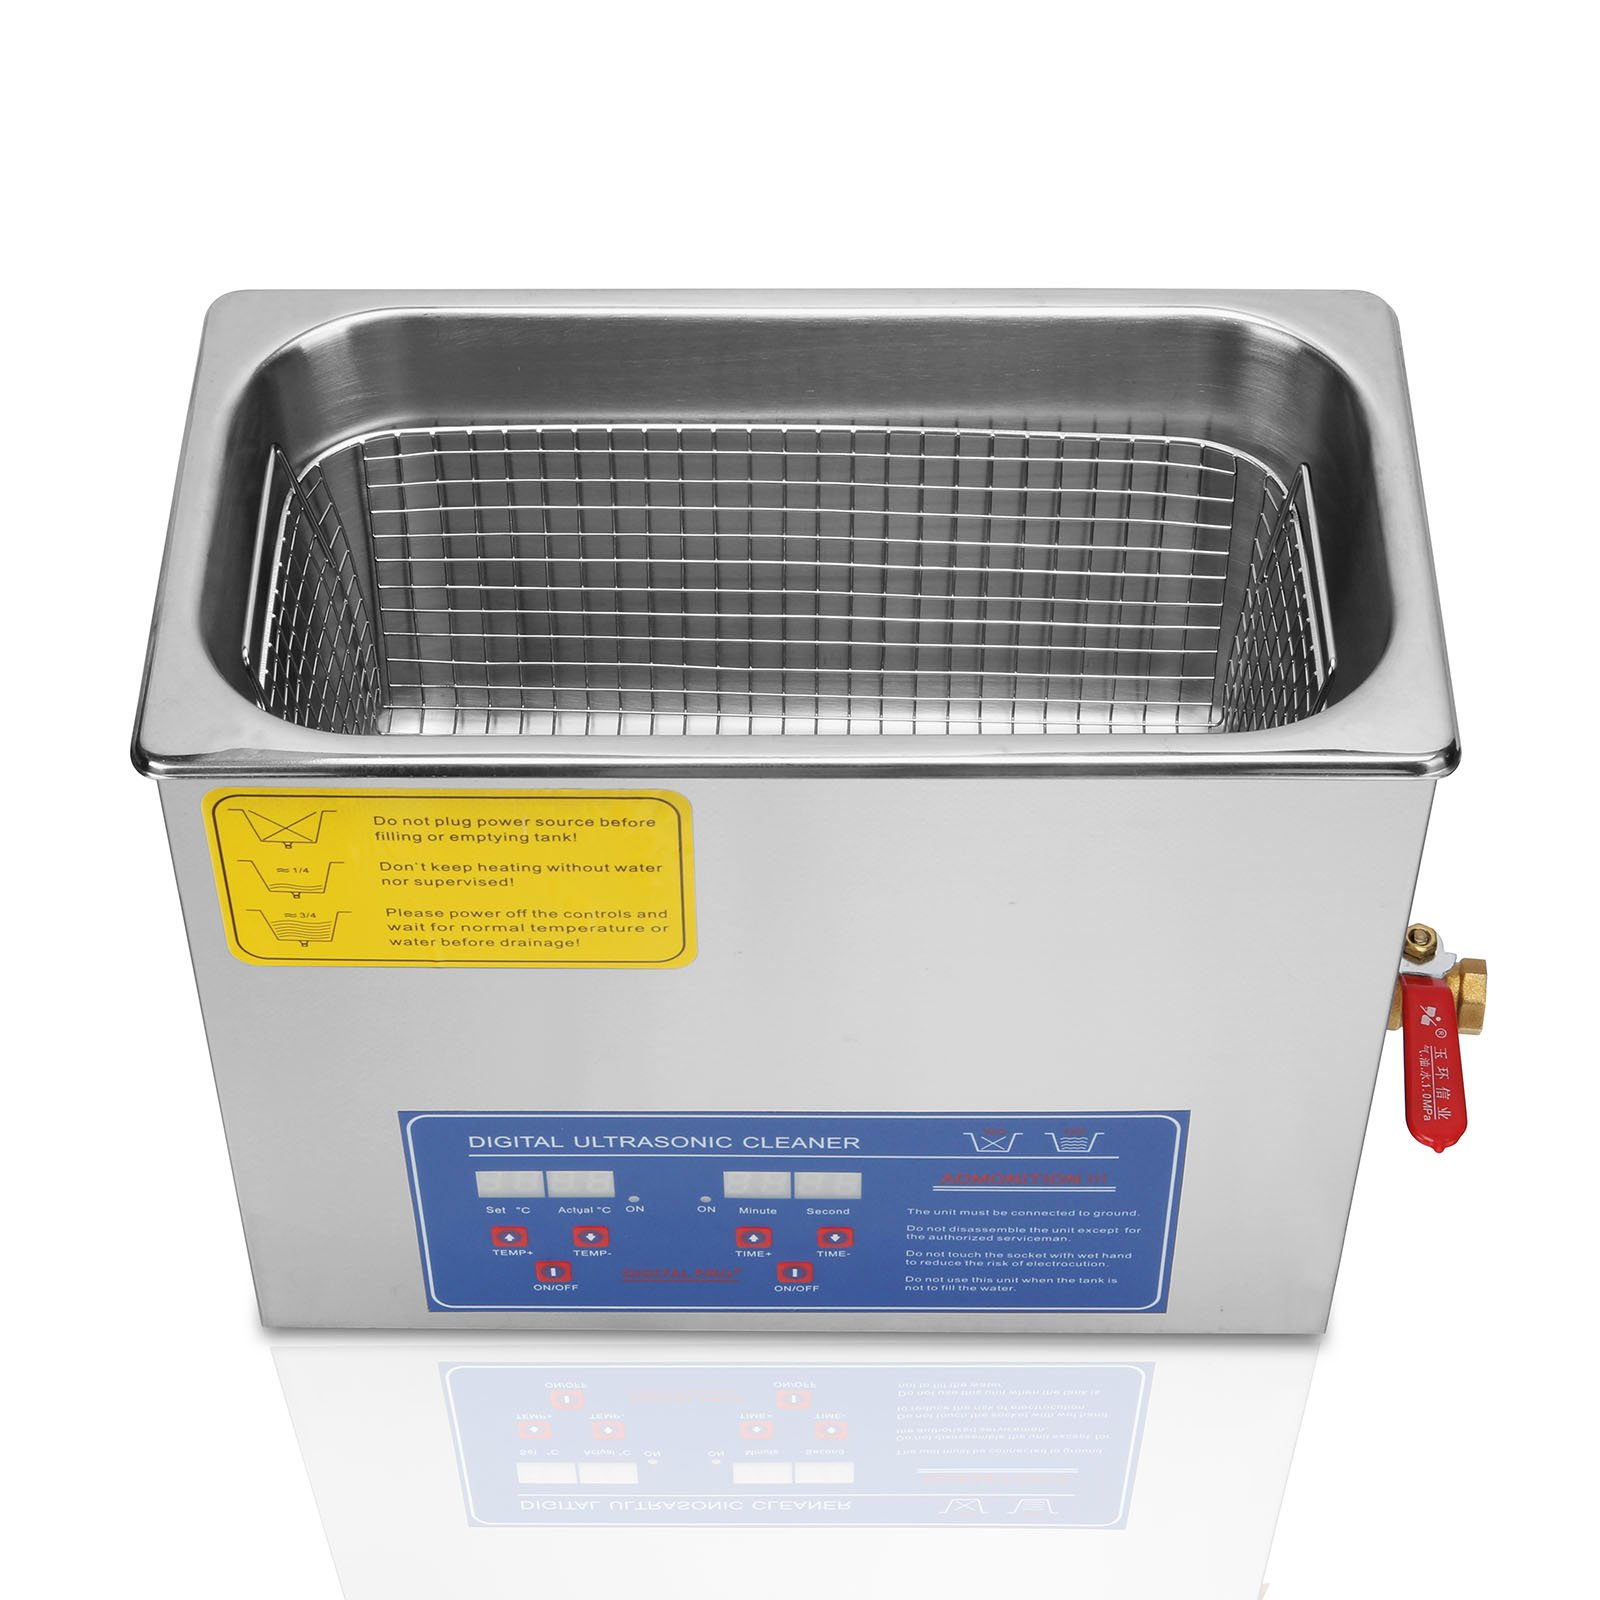 OrangeA Ultrasonic Cleaner Ultrasonic Cleaner Solution Heated Ultrasonic Cleaner 6L for Jewelry Watch Cleaning Industry Heated Heater with Drainage System (6 Liter) by OrangeA (Image #6)